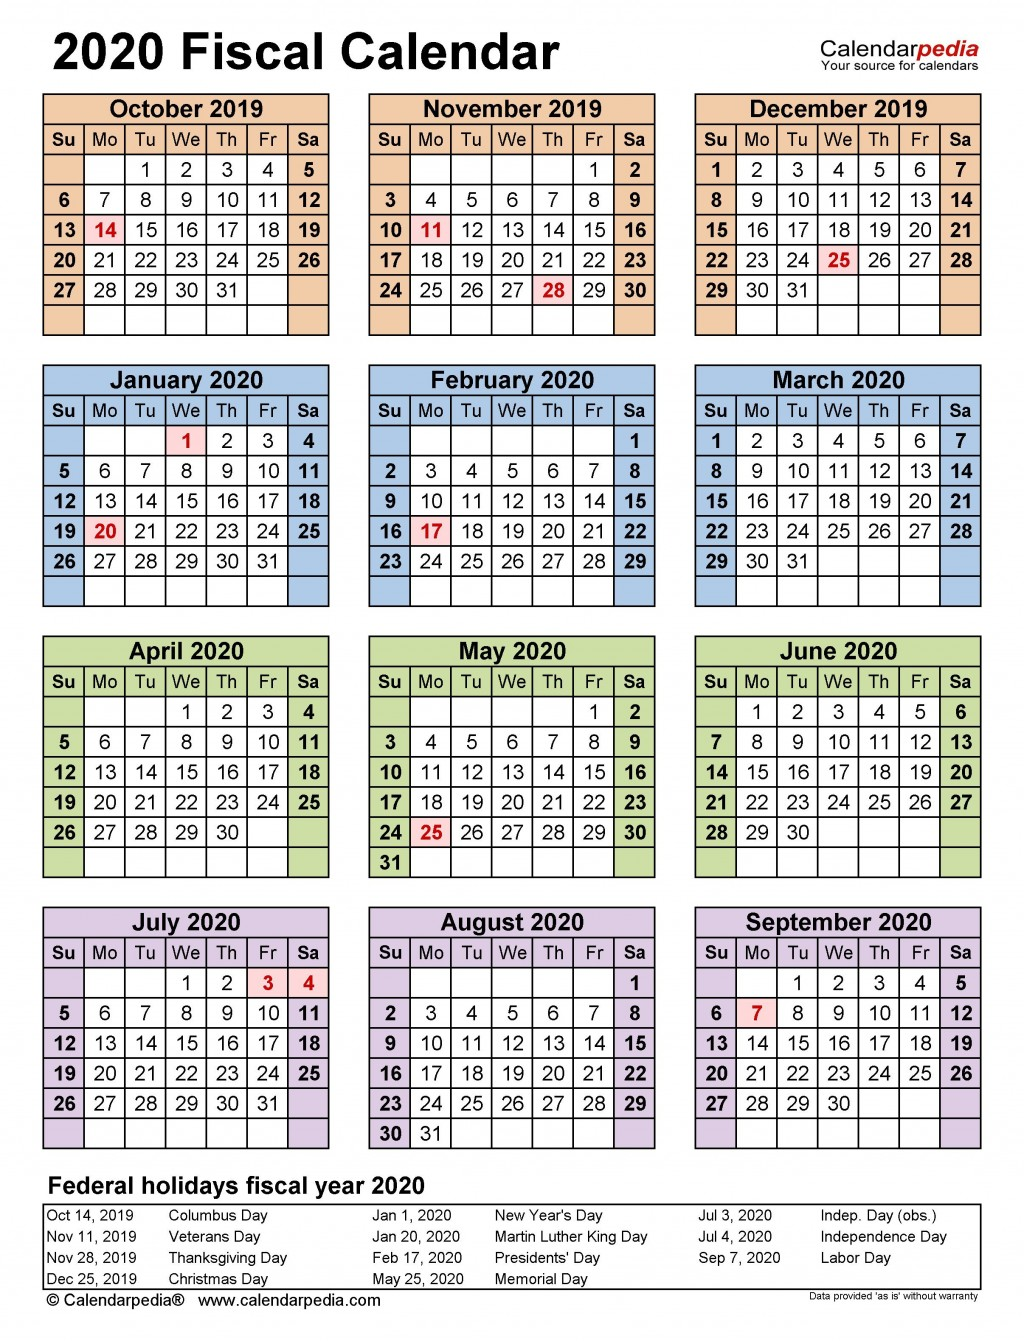 005 Magnificent Payroll Calendar Template 2020 Image  Biweekly Schedule Excel FreeLarge